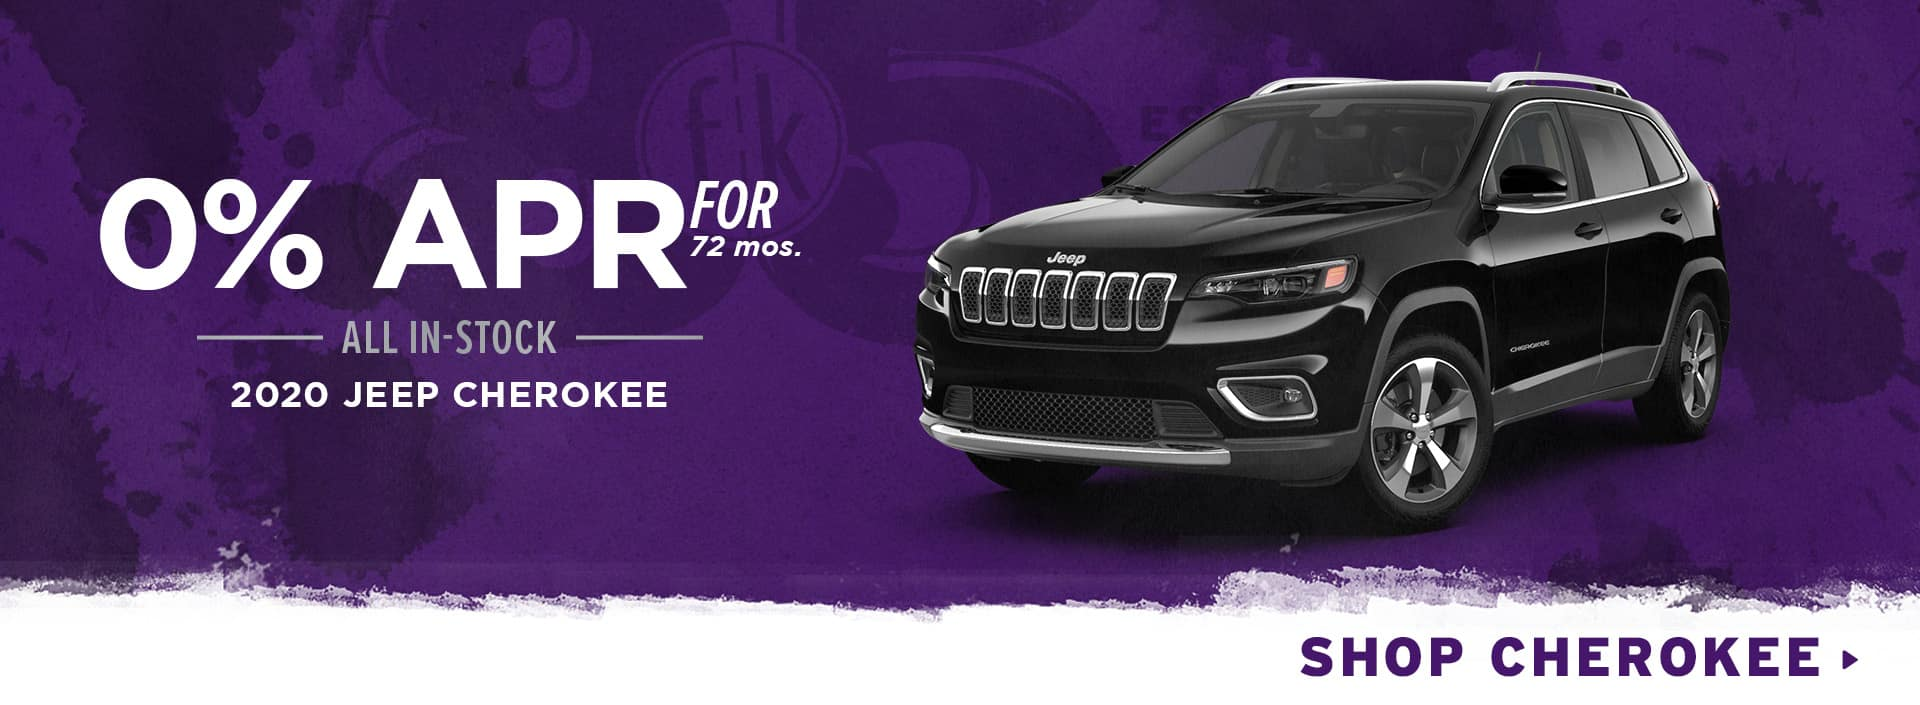 0% for 72 mos. All In-Stock 2020 Jeep Cherokee